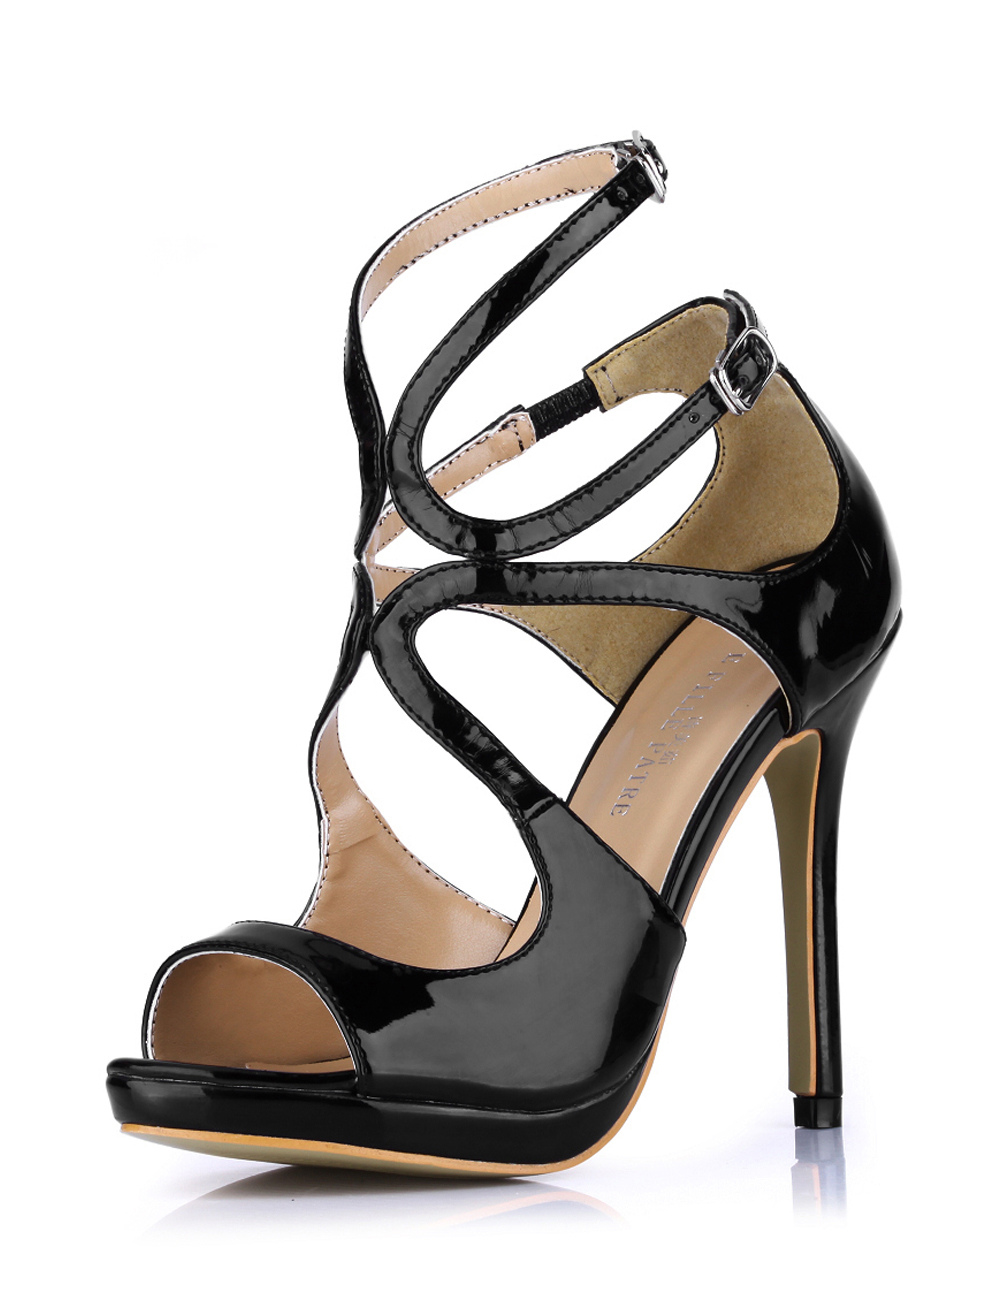 High Heel Sandals 2018 Black Open Toe Buckle Detail Strappy Sandal Shoes